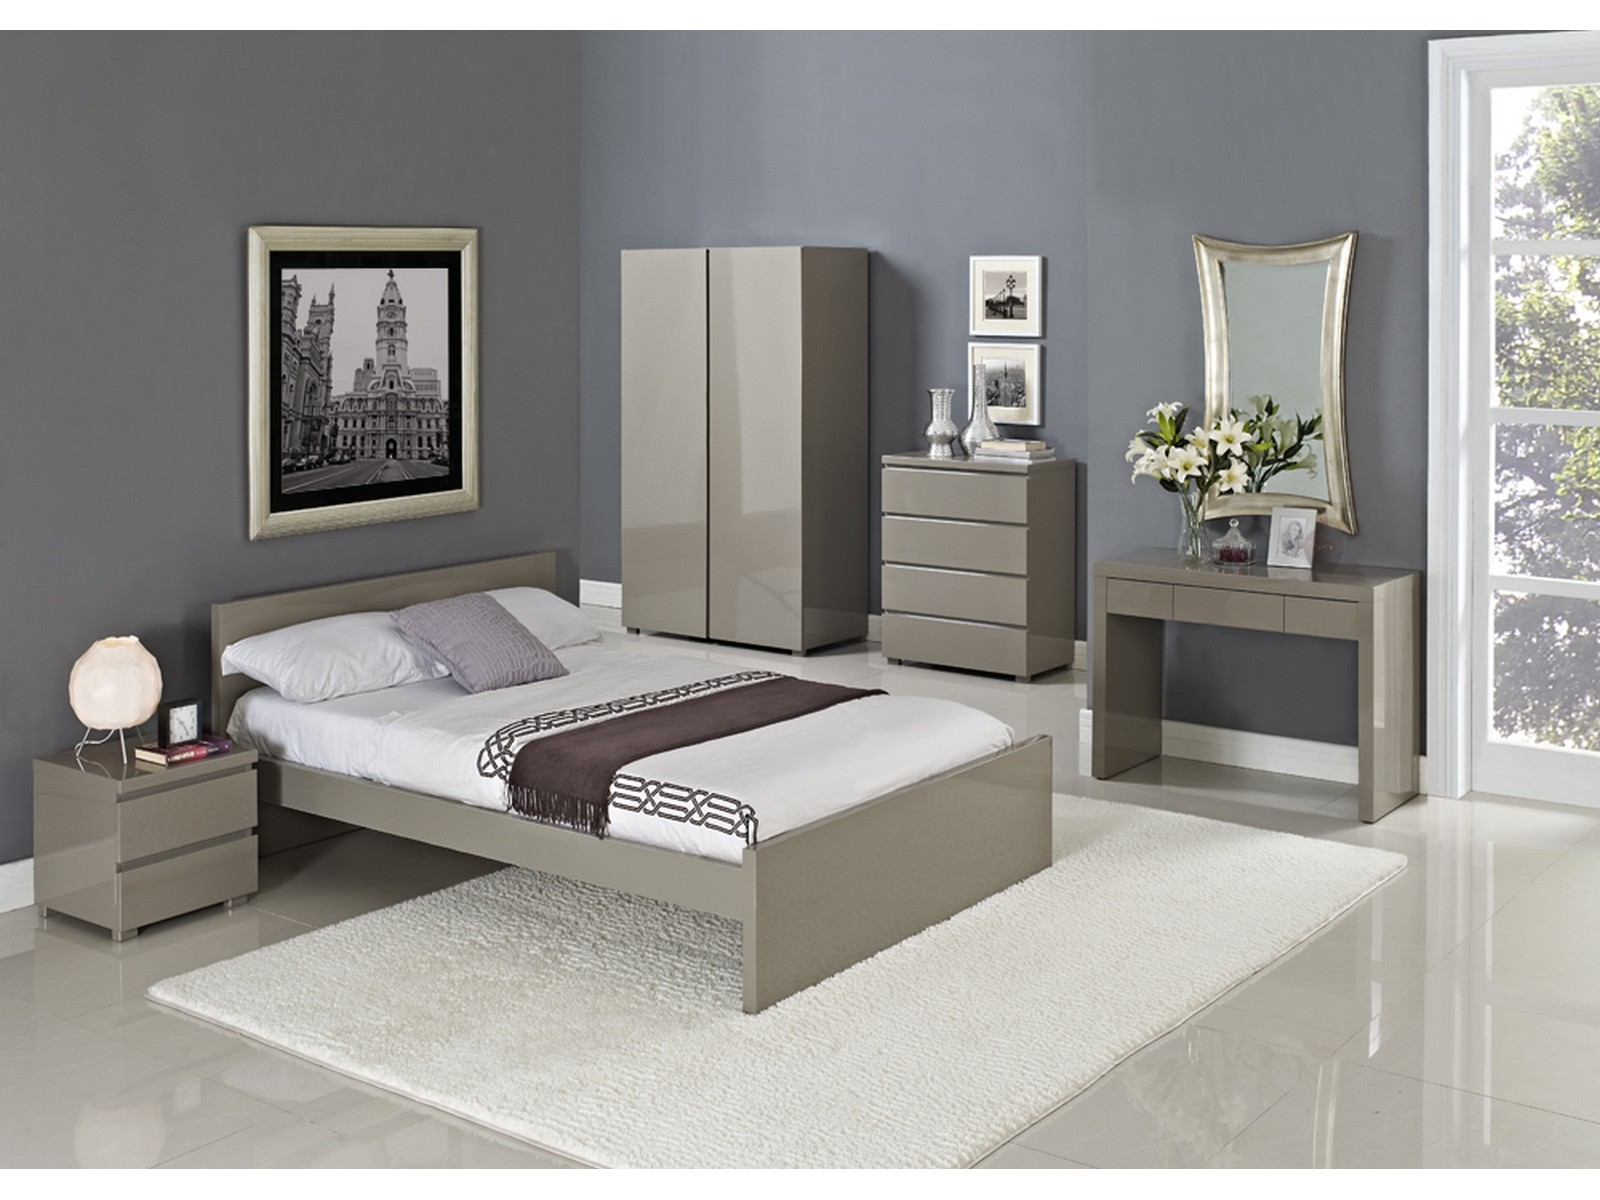 Details about Puro Stone or Cream High Gloss Bedroom Furniture - Beds,  Wardrobe - 9ft 9ft9 9ft